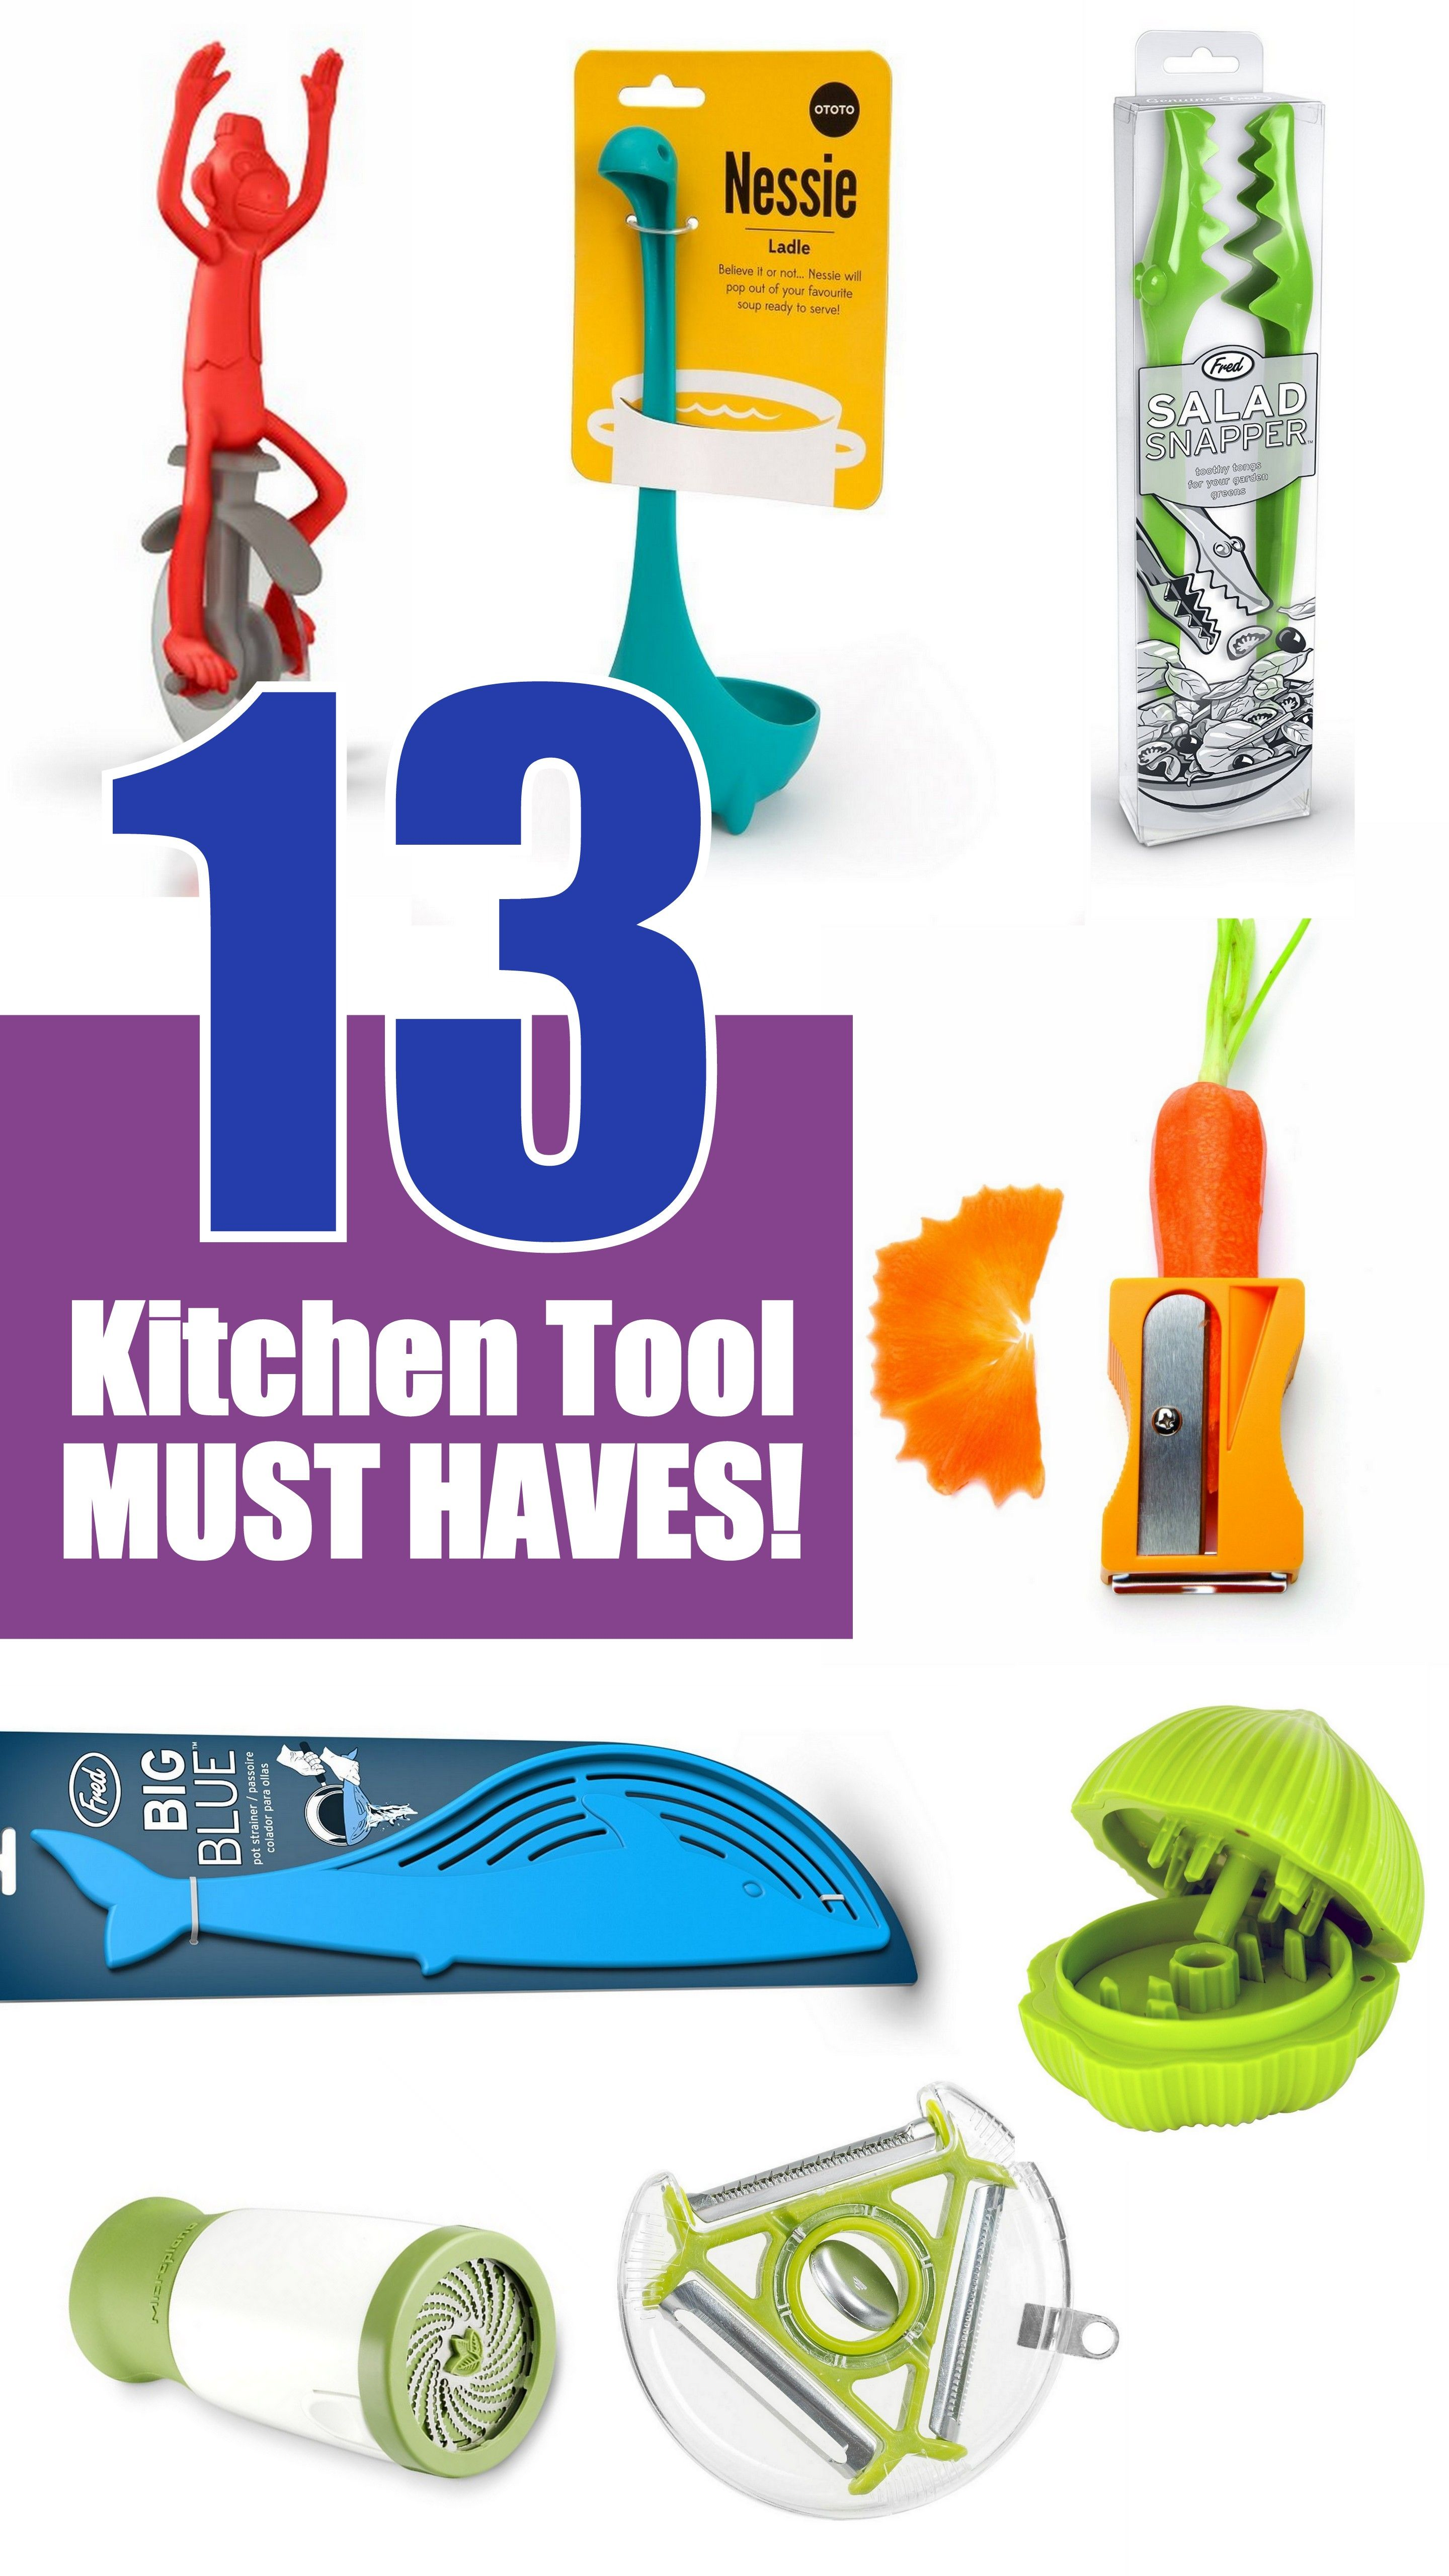 13 must have kitchen tools all i want for my birthday pinterest. Black Bedroom Furniture Sets. Home Design Ideas